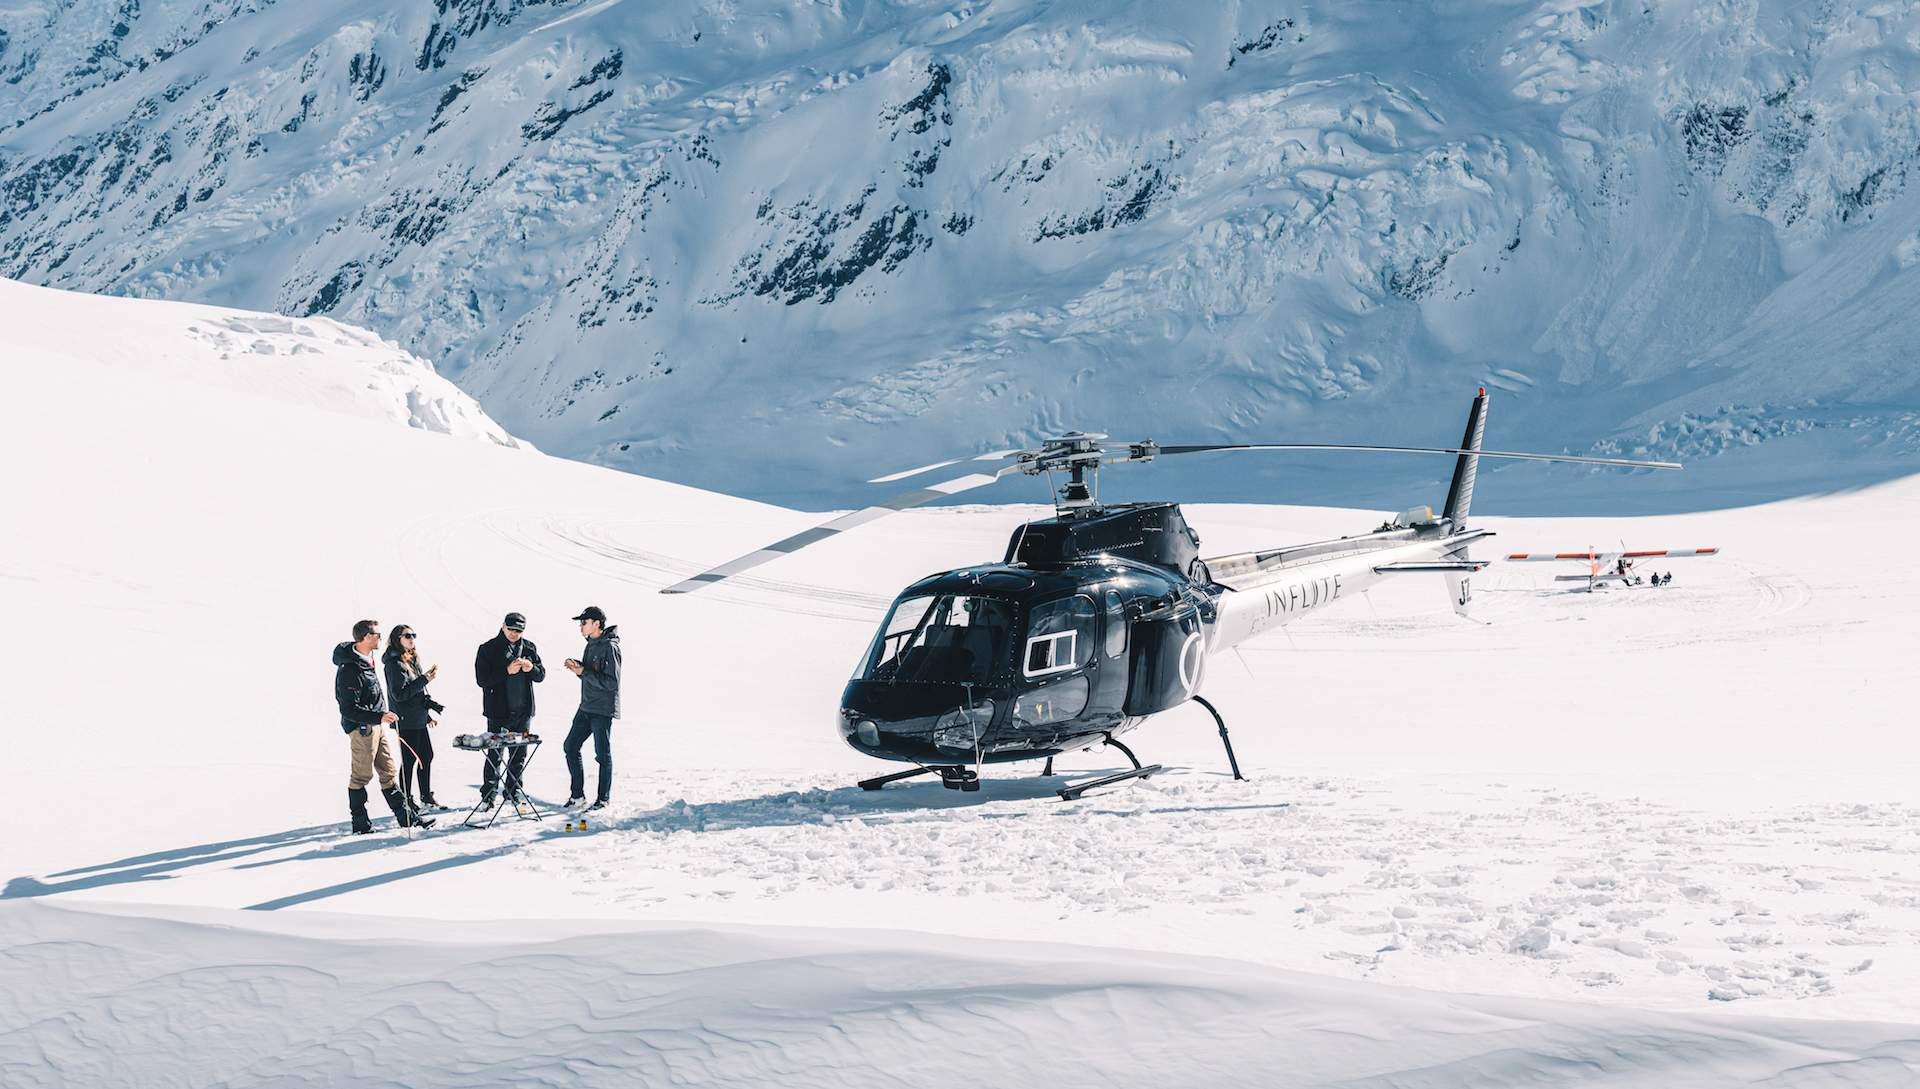 Seven New Zealand Snow Experiences That Aren't Just Skiing or Snowboarding